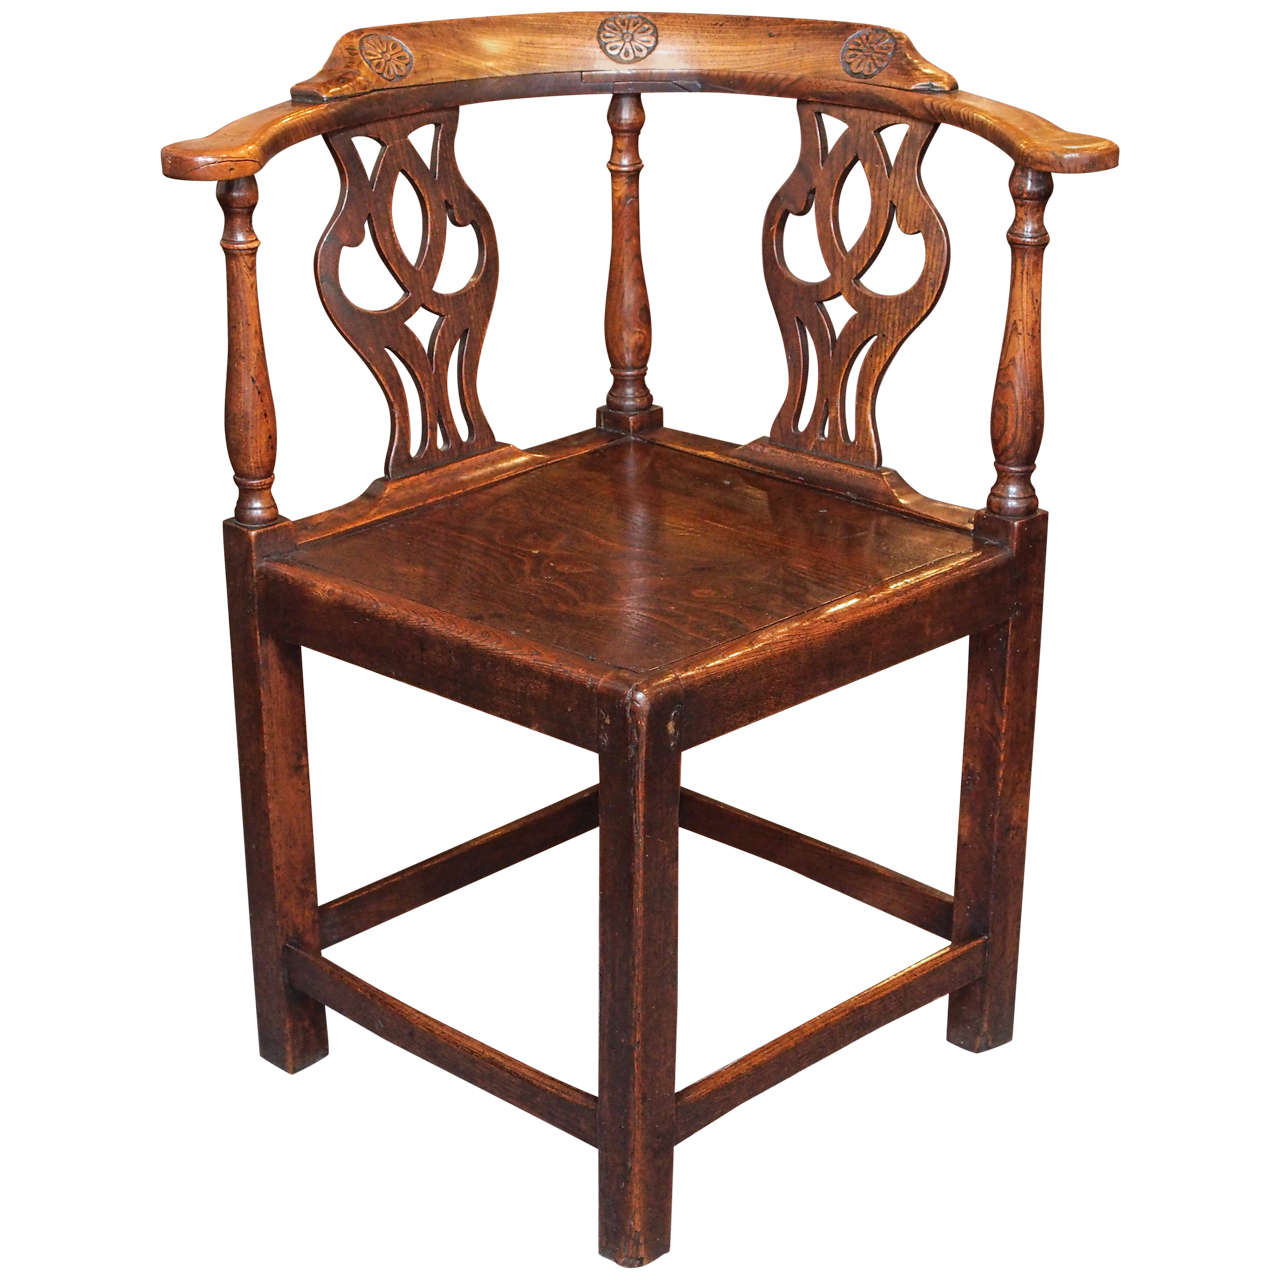 Antique English Corner Chair For Sale - Antique English Corner Chair At 1stdibs